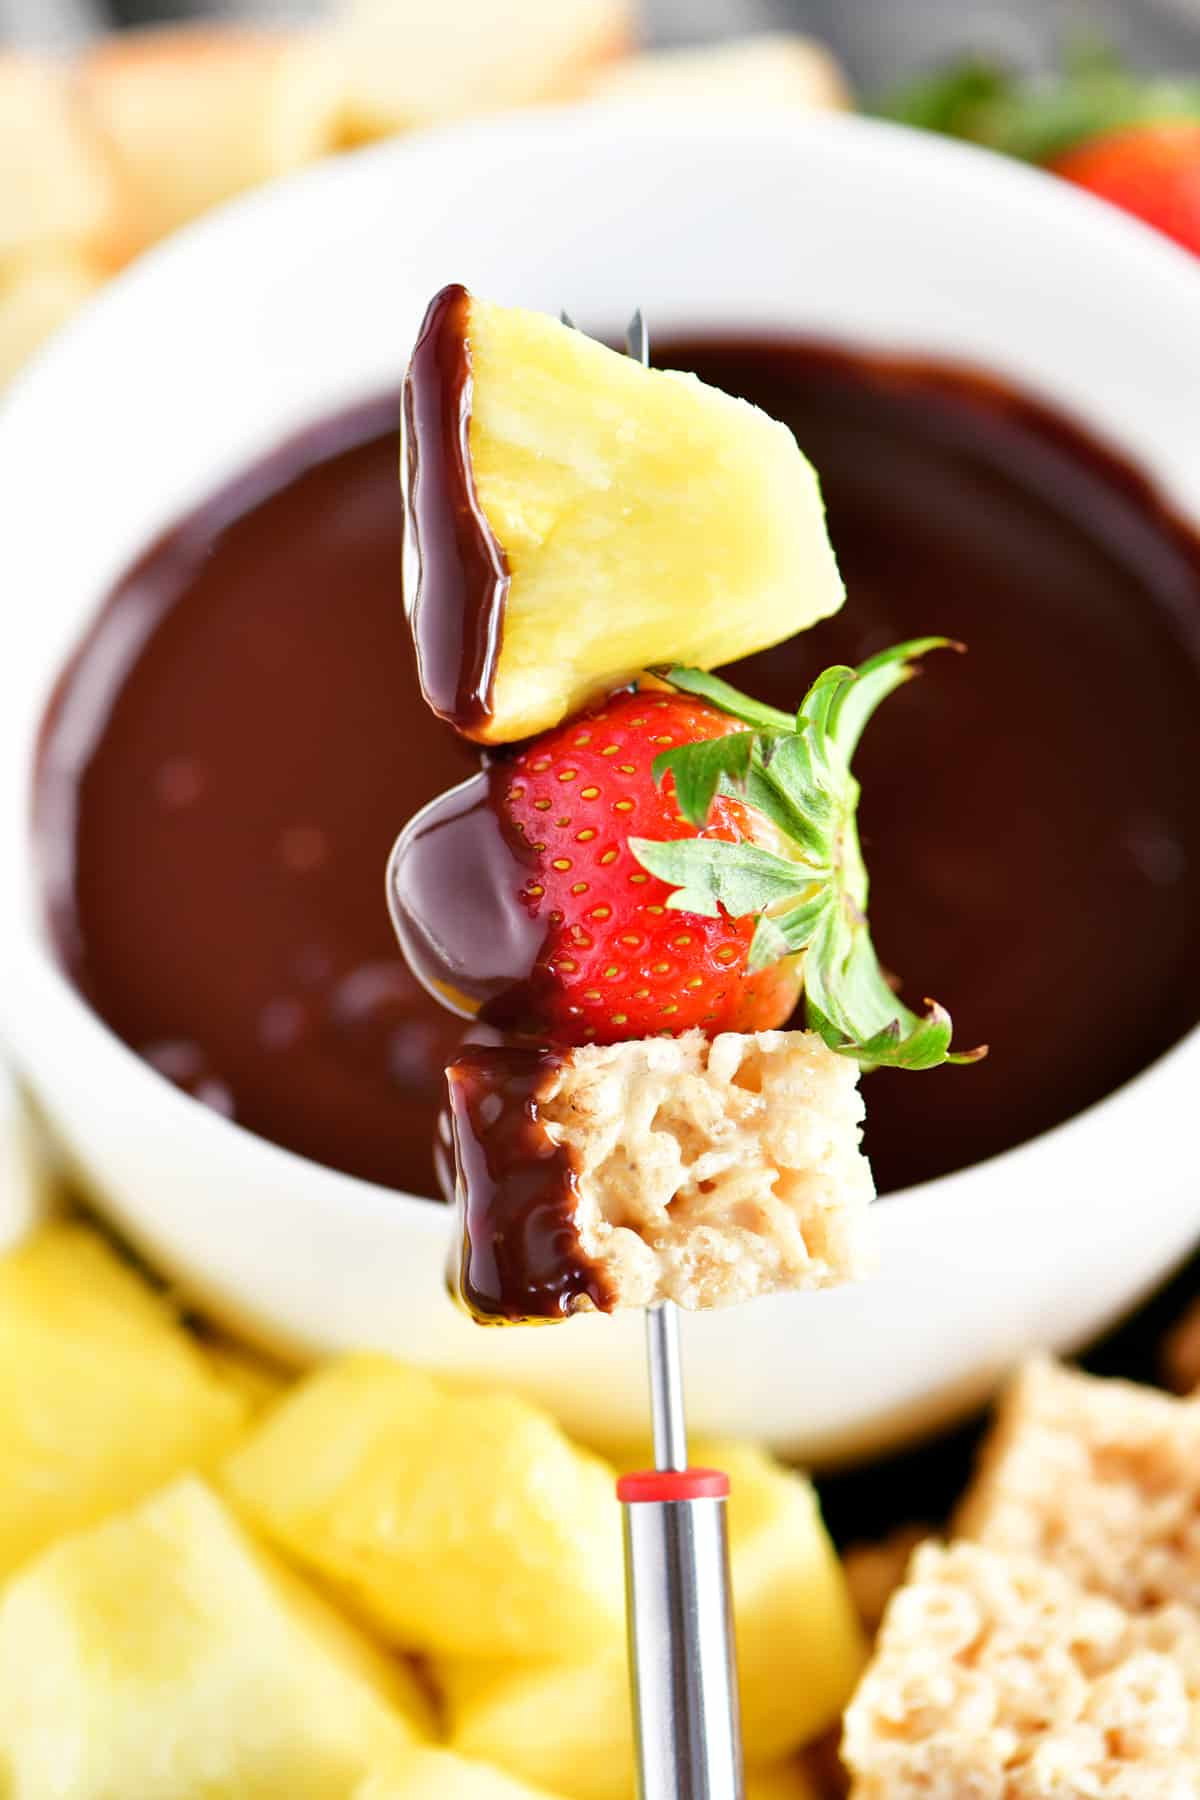 a rice crispy square, strawberry and pineapple speared on a fondue fork